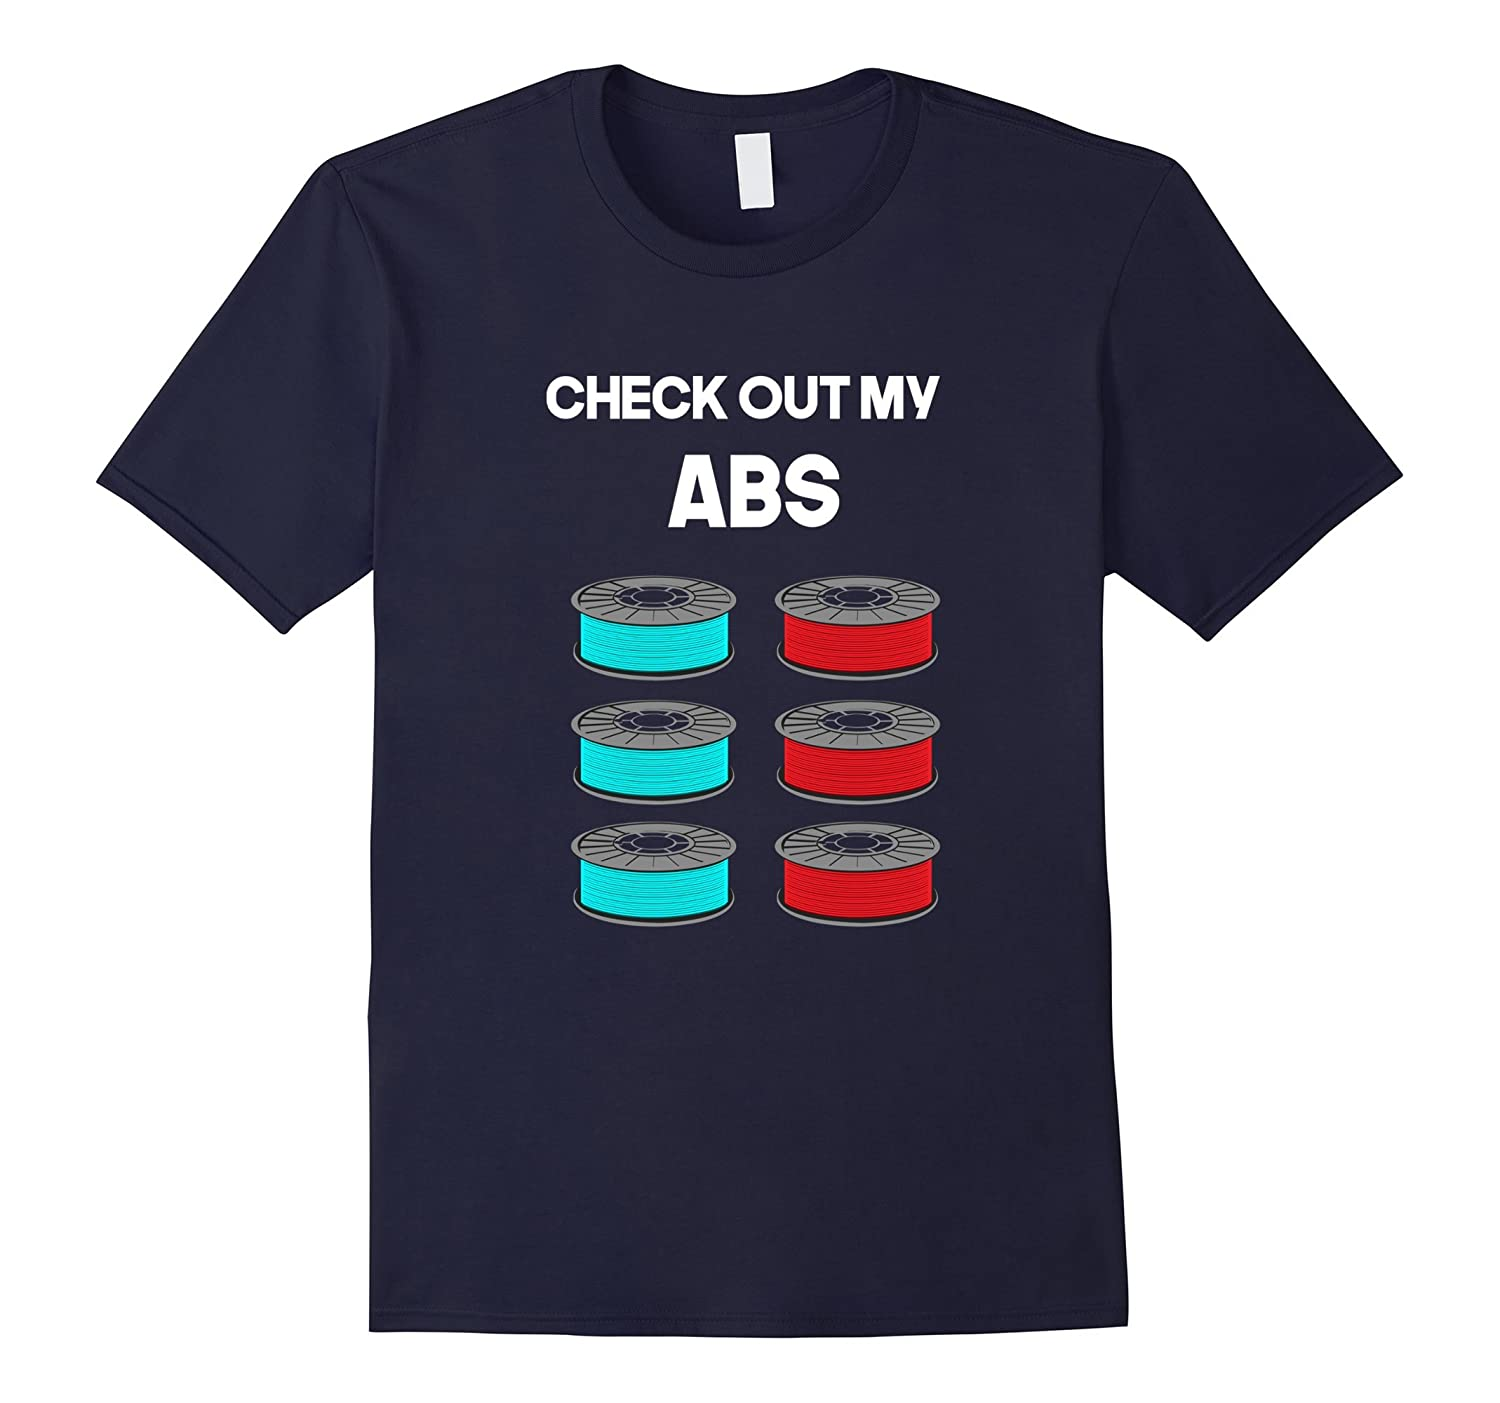 Mens 3D Printing Shirt check out my ABS Filament T-Shirt-BN